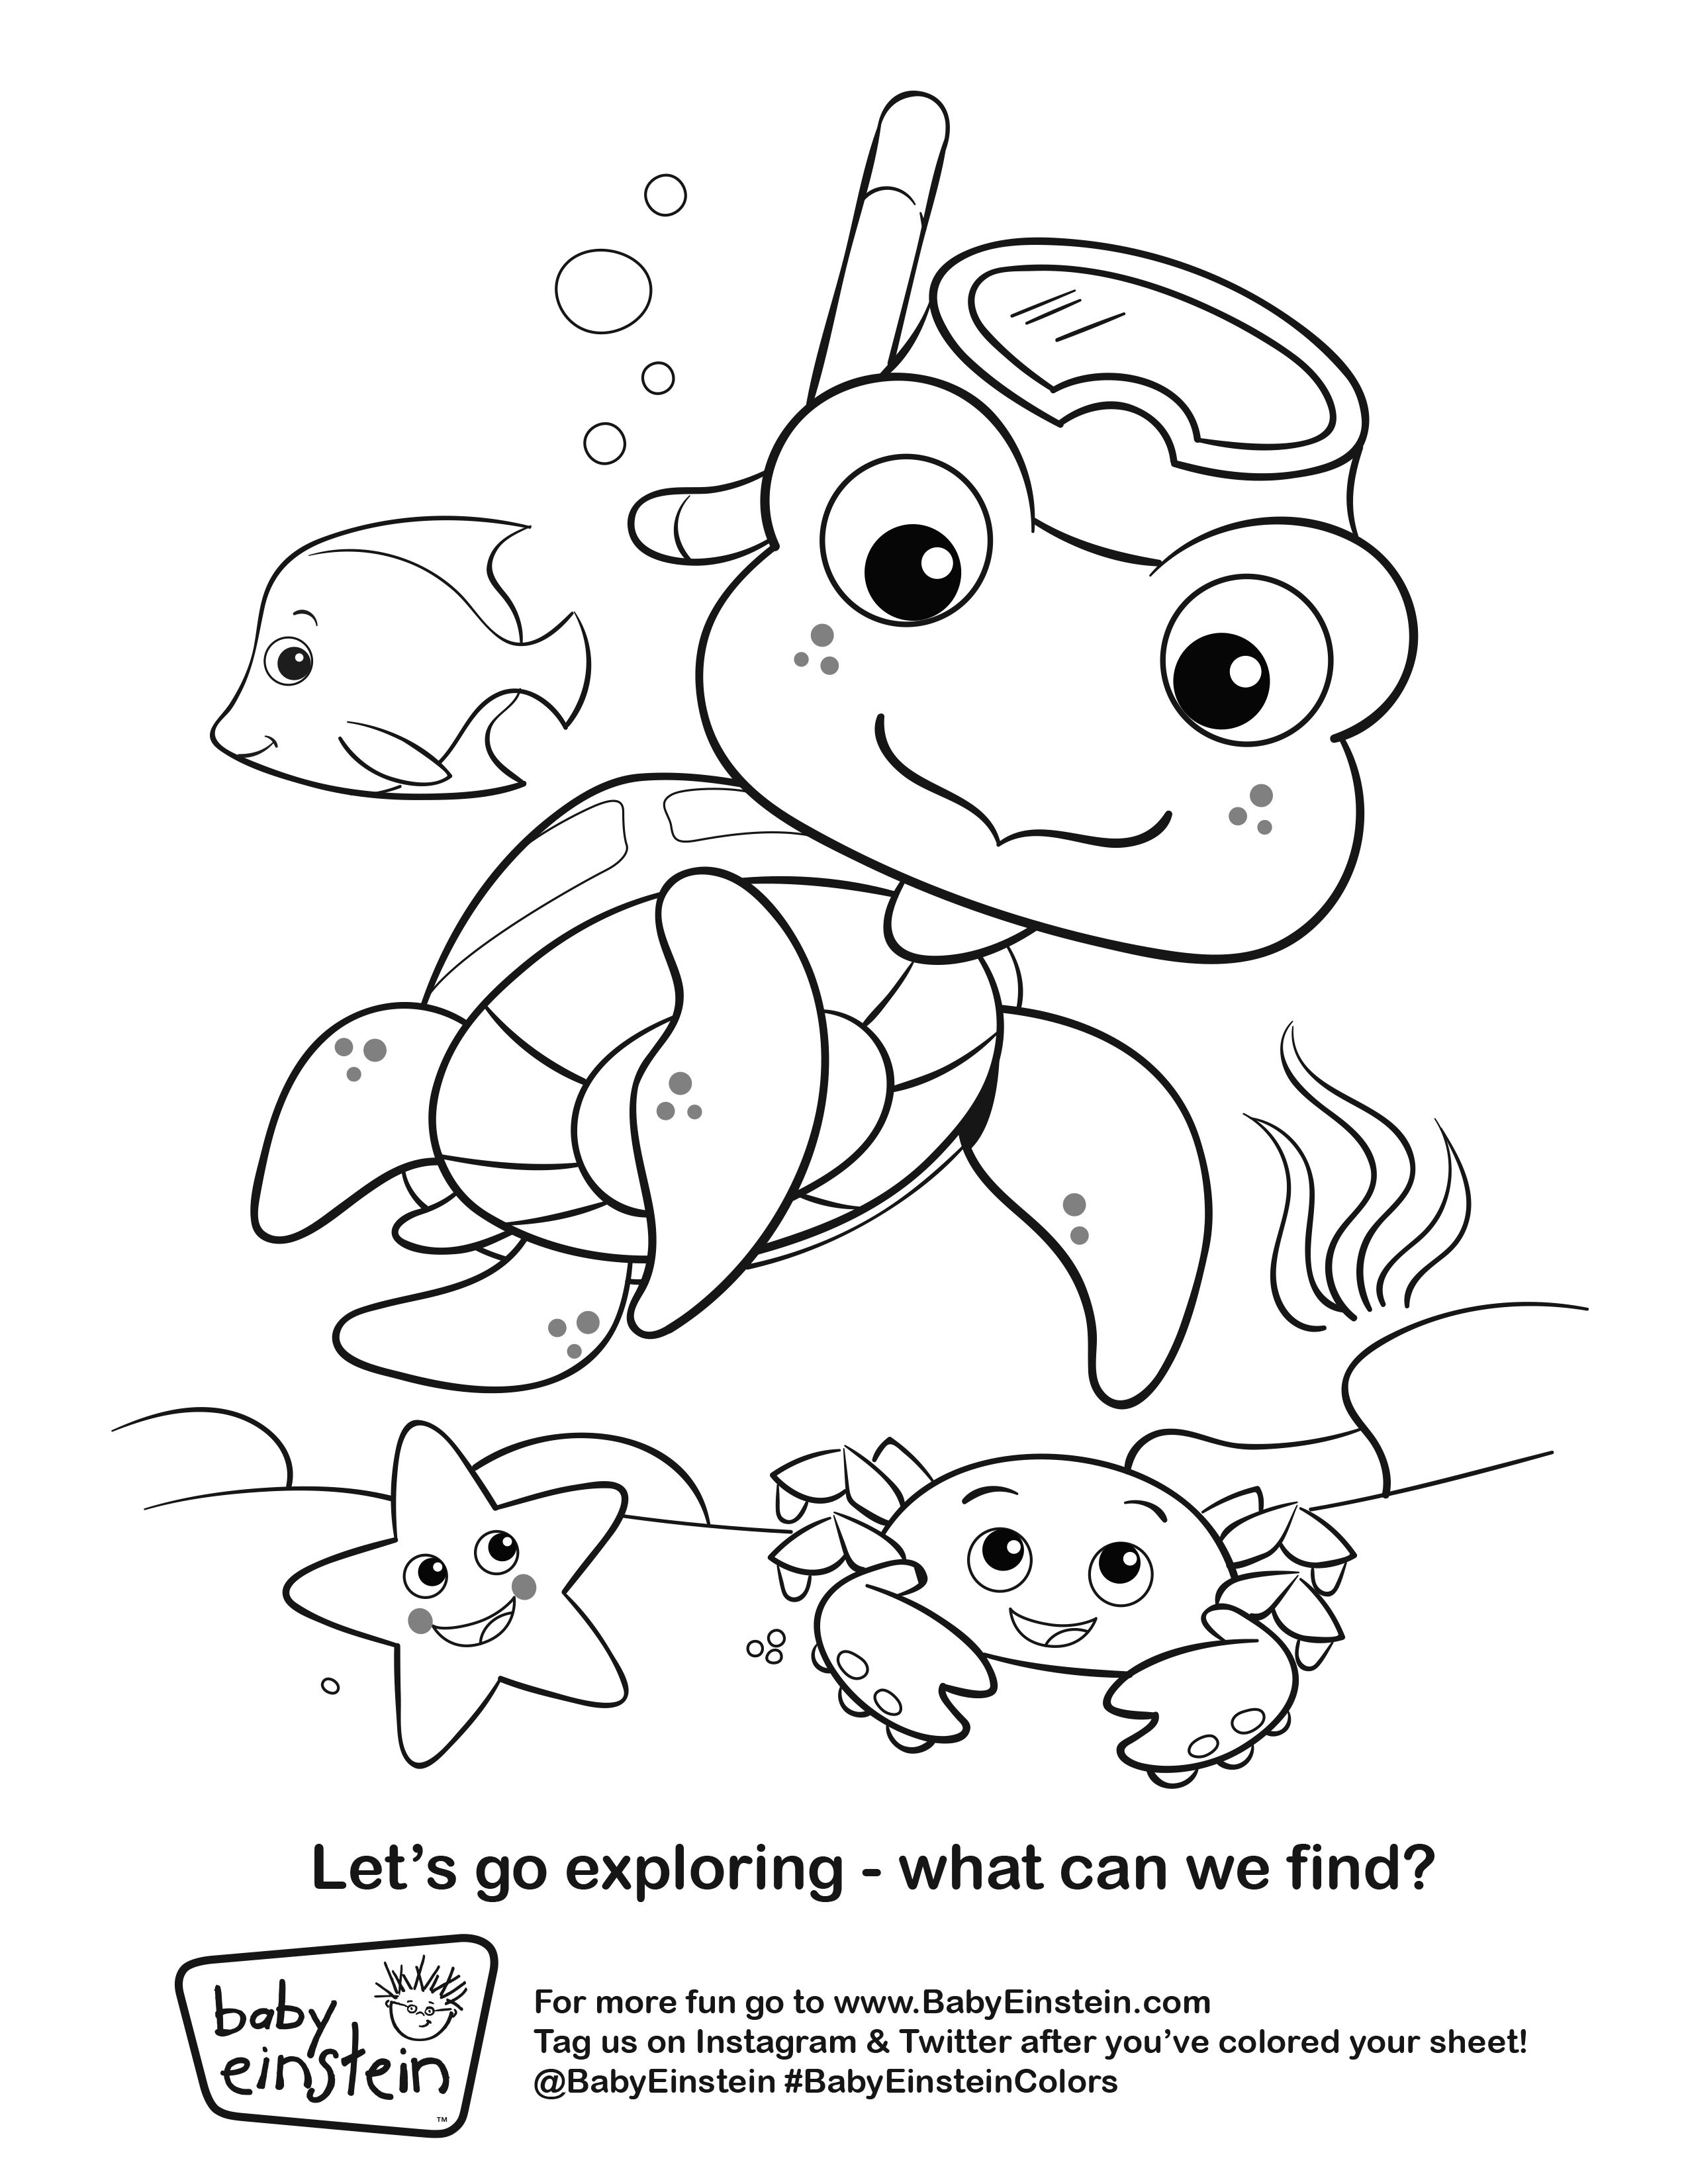 Keep Your Little One Having Fun This Summer With Our Coloring Sheets Print It Out And Show Us The Turtle Crafts Animal Coloring Pages Alphabet Coloring Pages